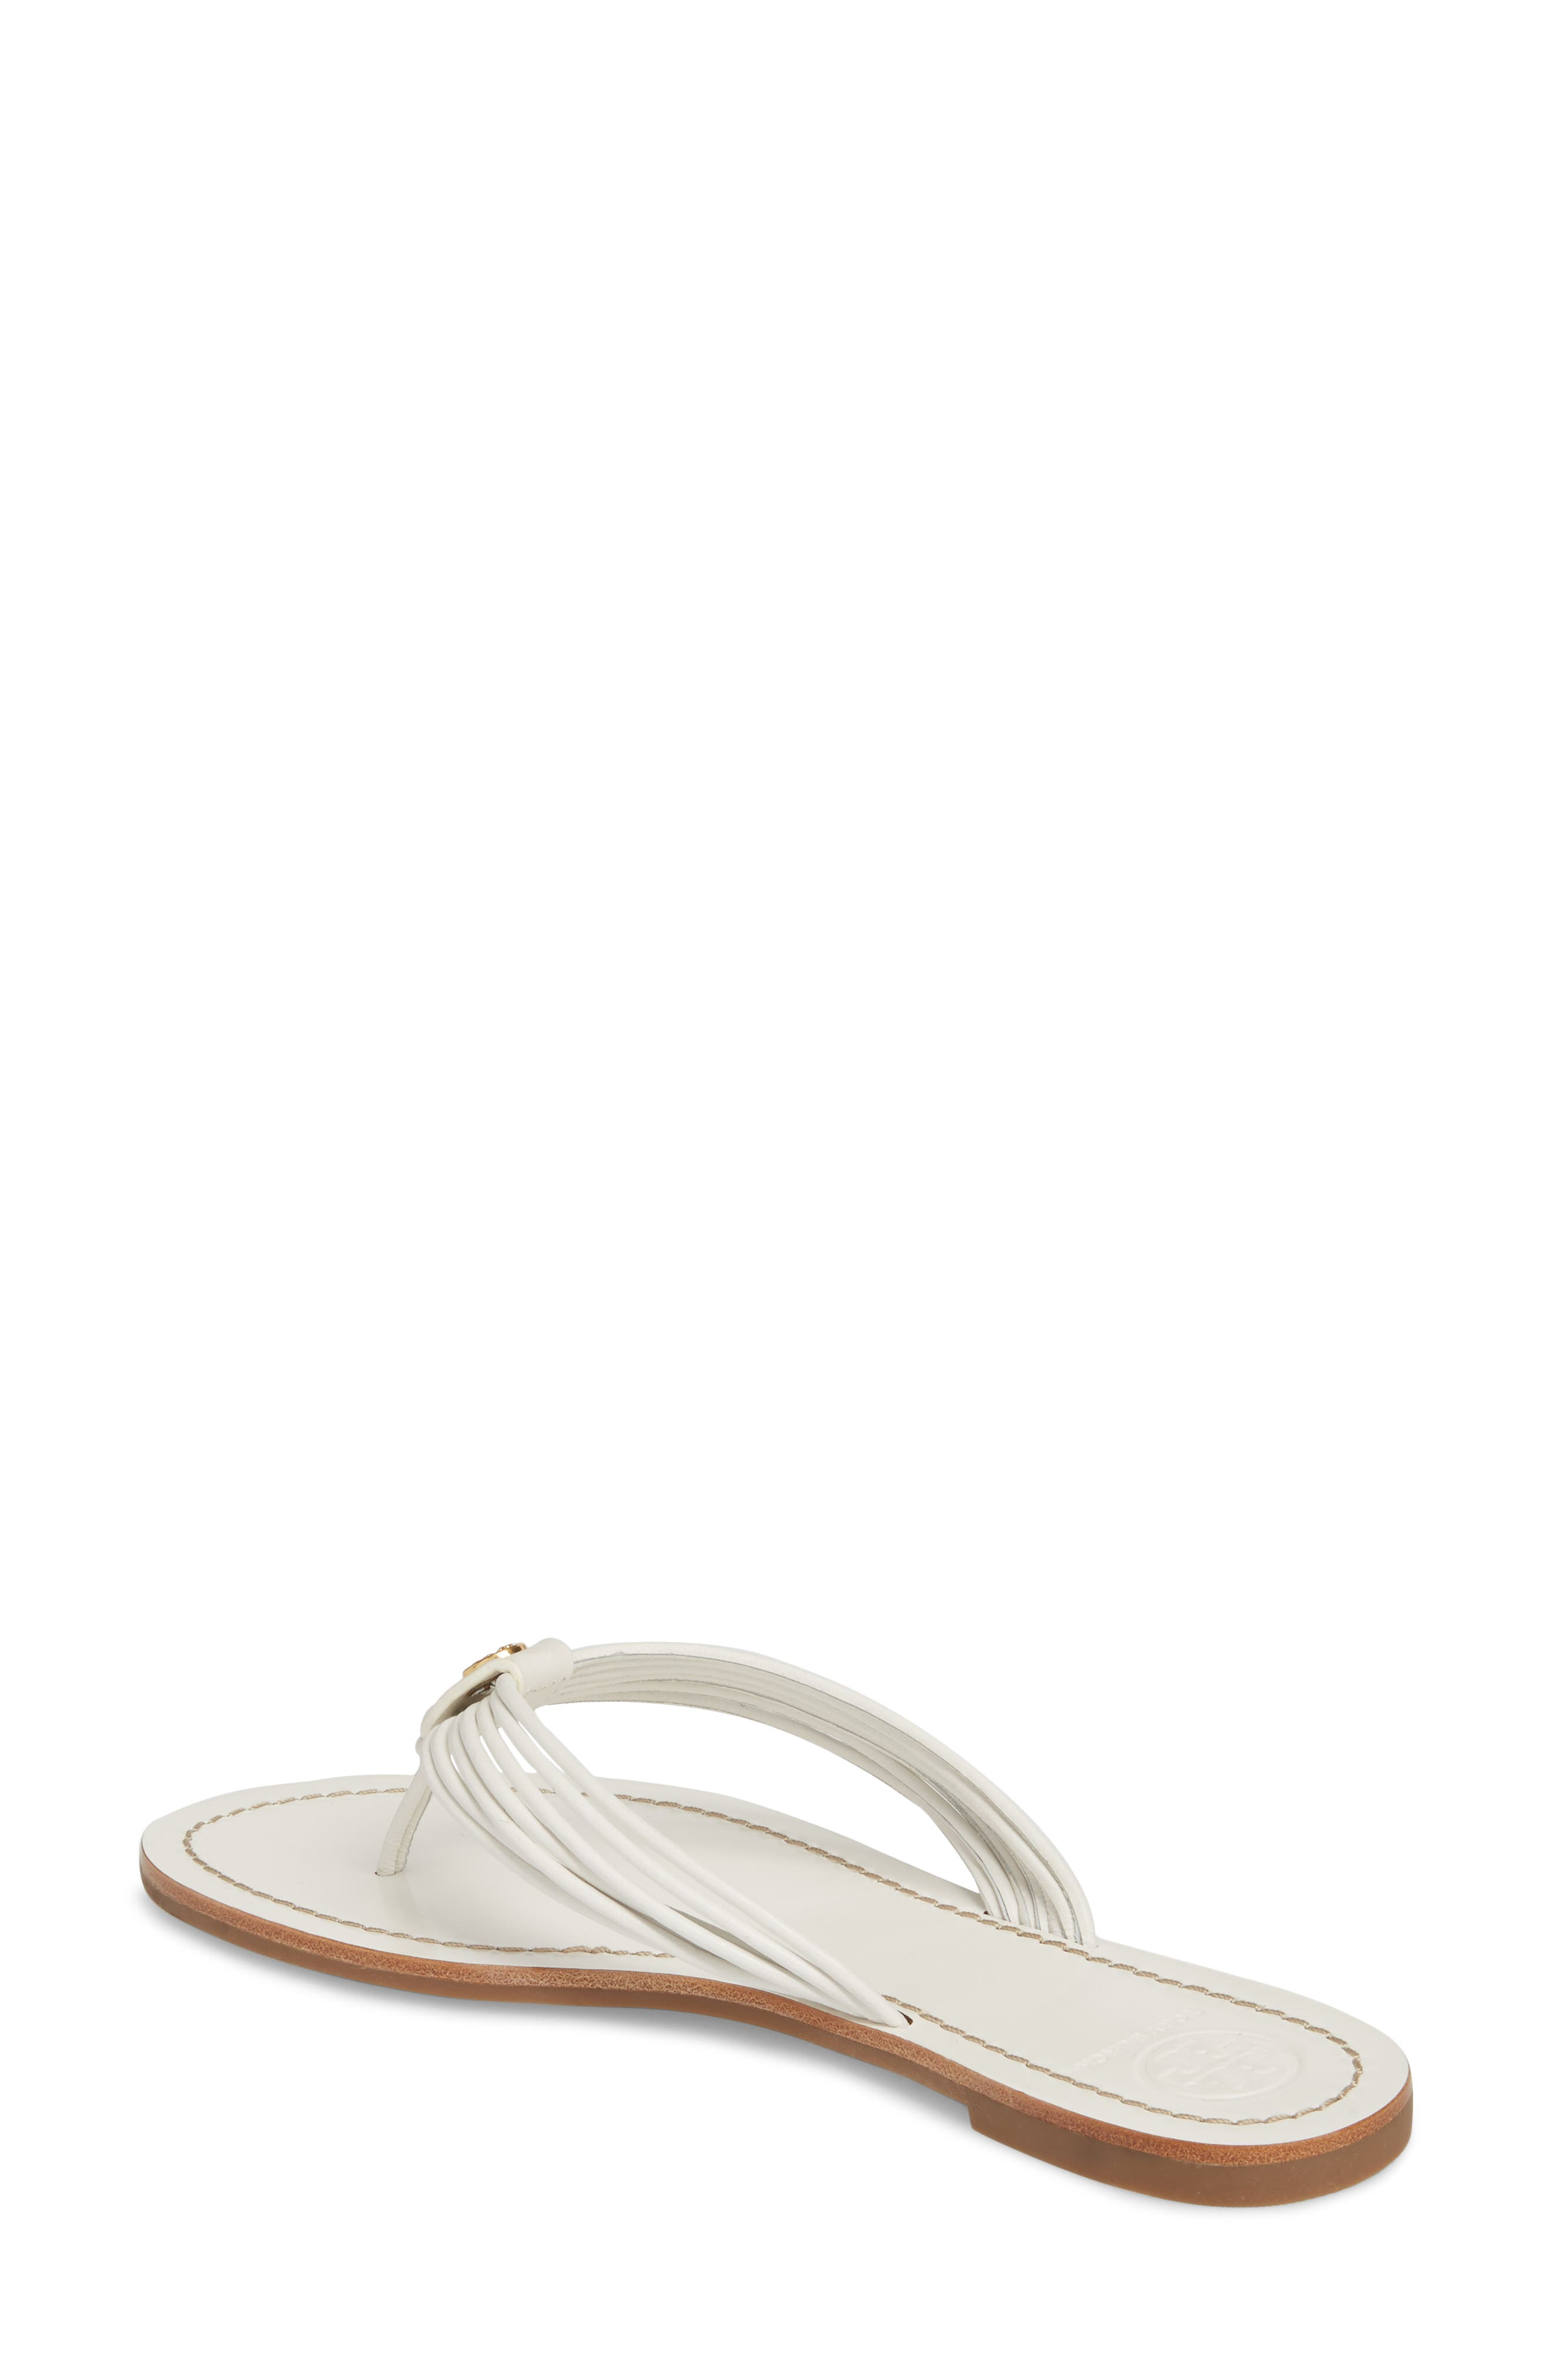 Sienna Strappy Thong Sandal,                             Alternate thumbnail 2, color,                             Perfect White/ Perfect White